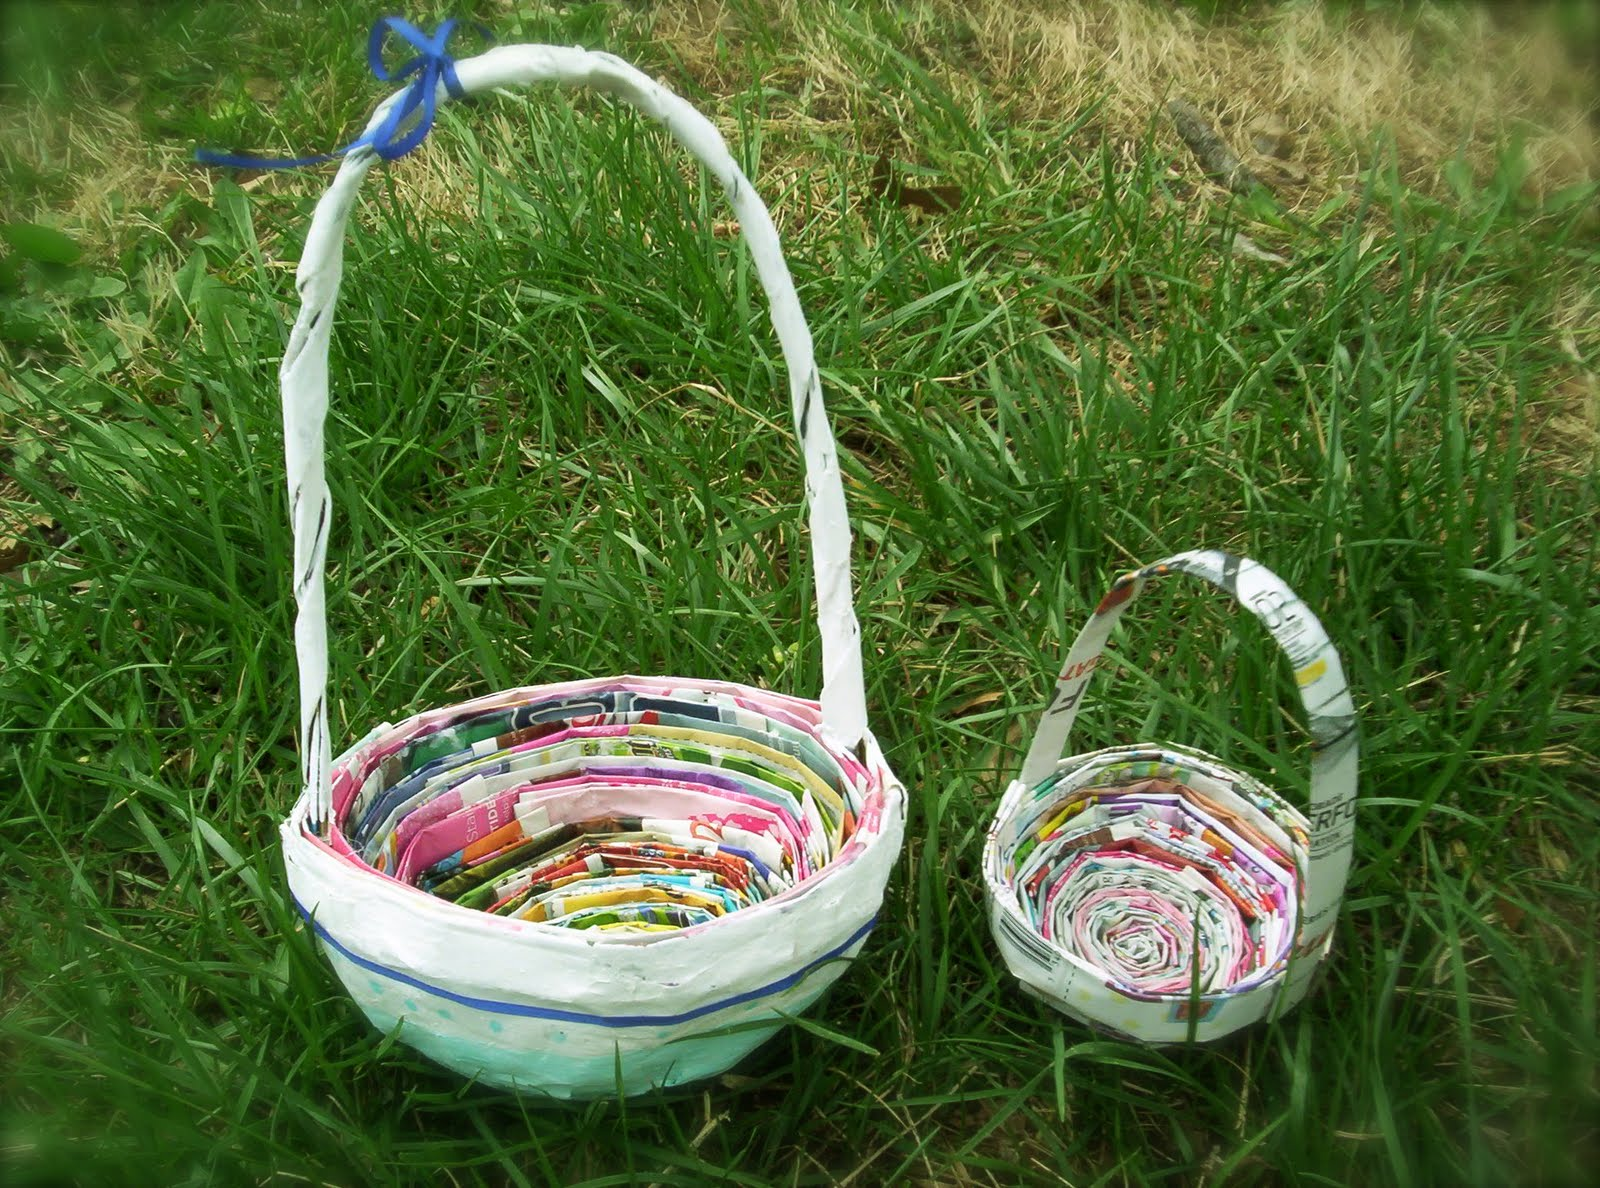 Basket Making Using Recycled Materials : Roots of simplicity recycled newspaper easter baskets